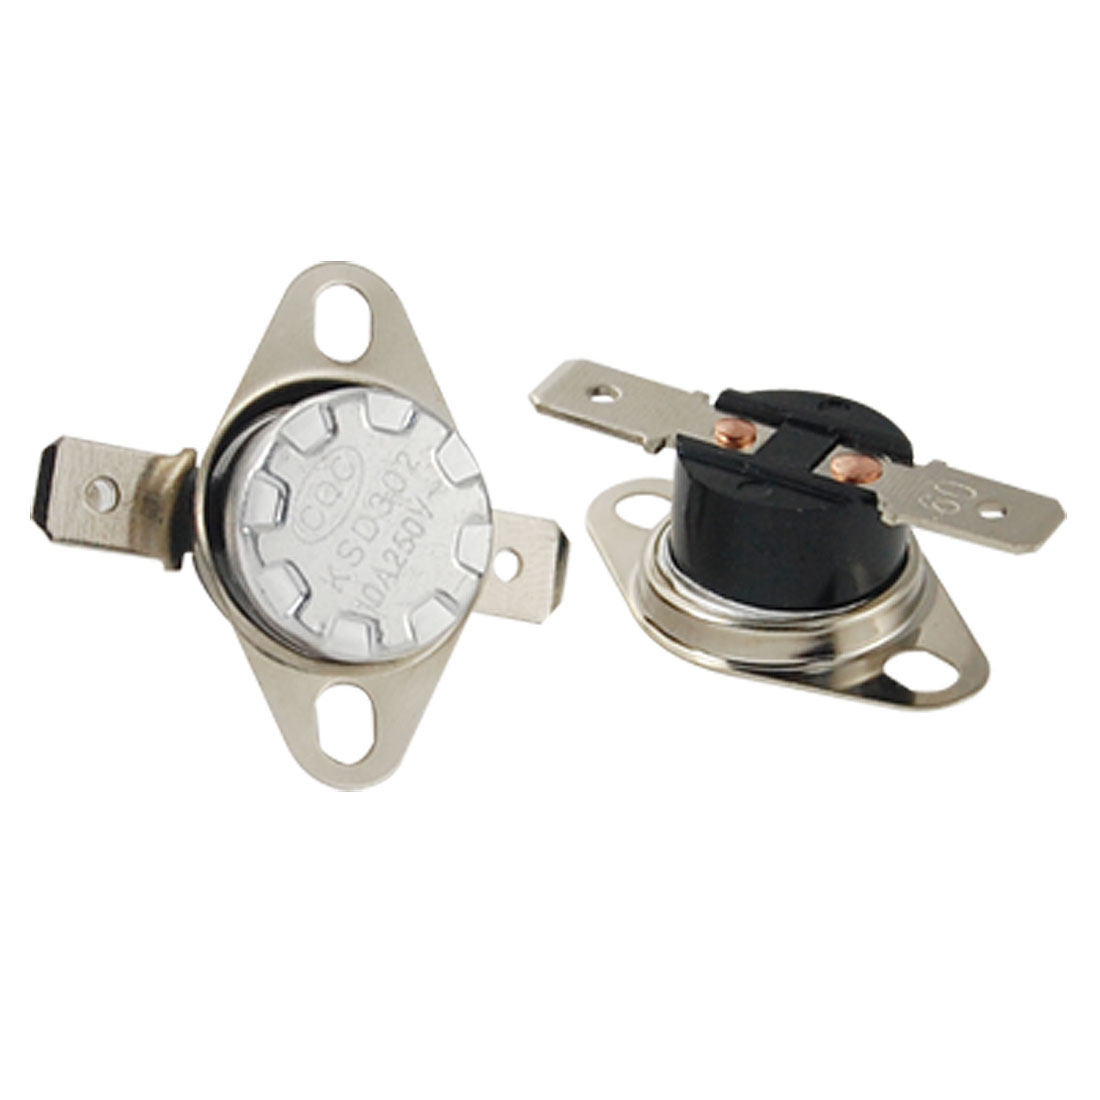 2 Pcs KSD302 Temperature Control Switch Thermostat 60 Celsius N.O